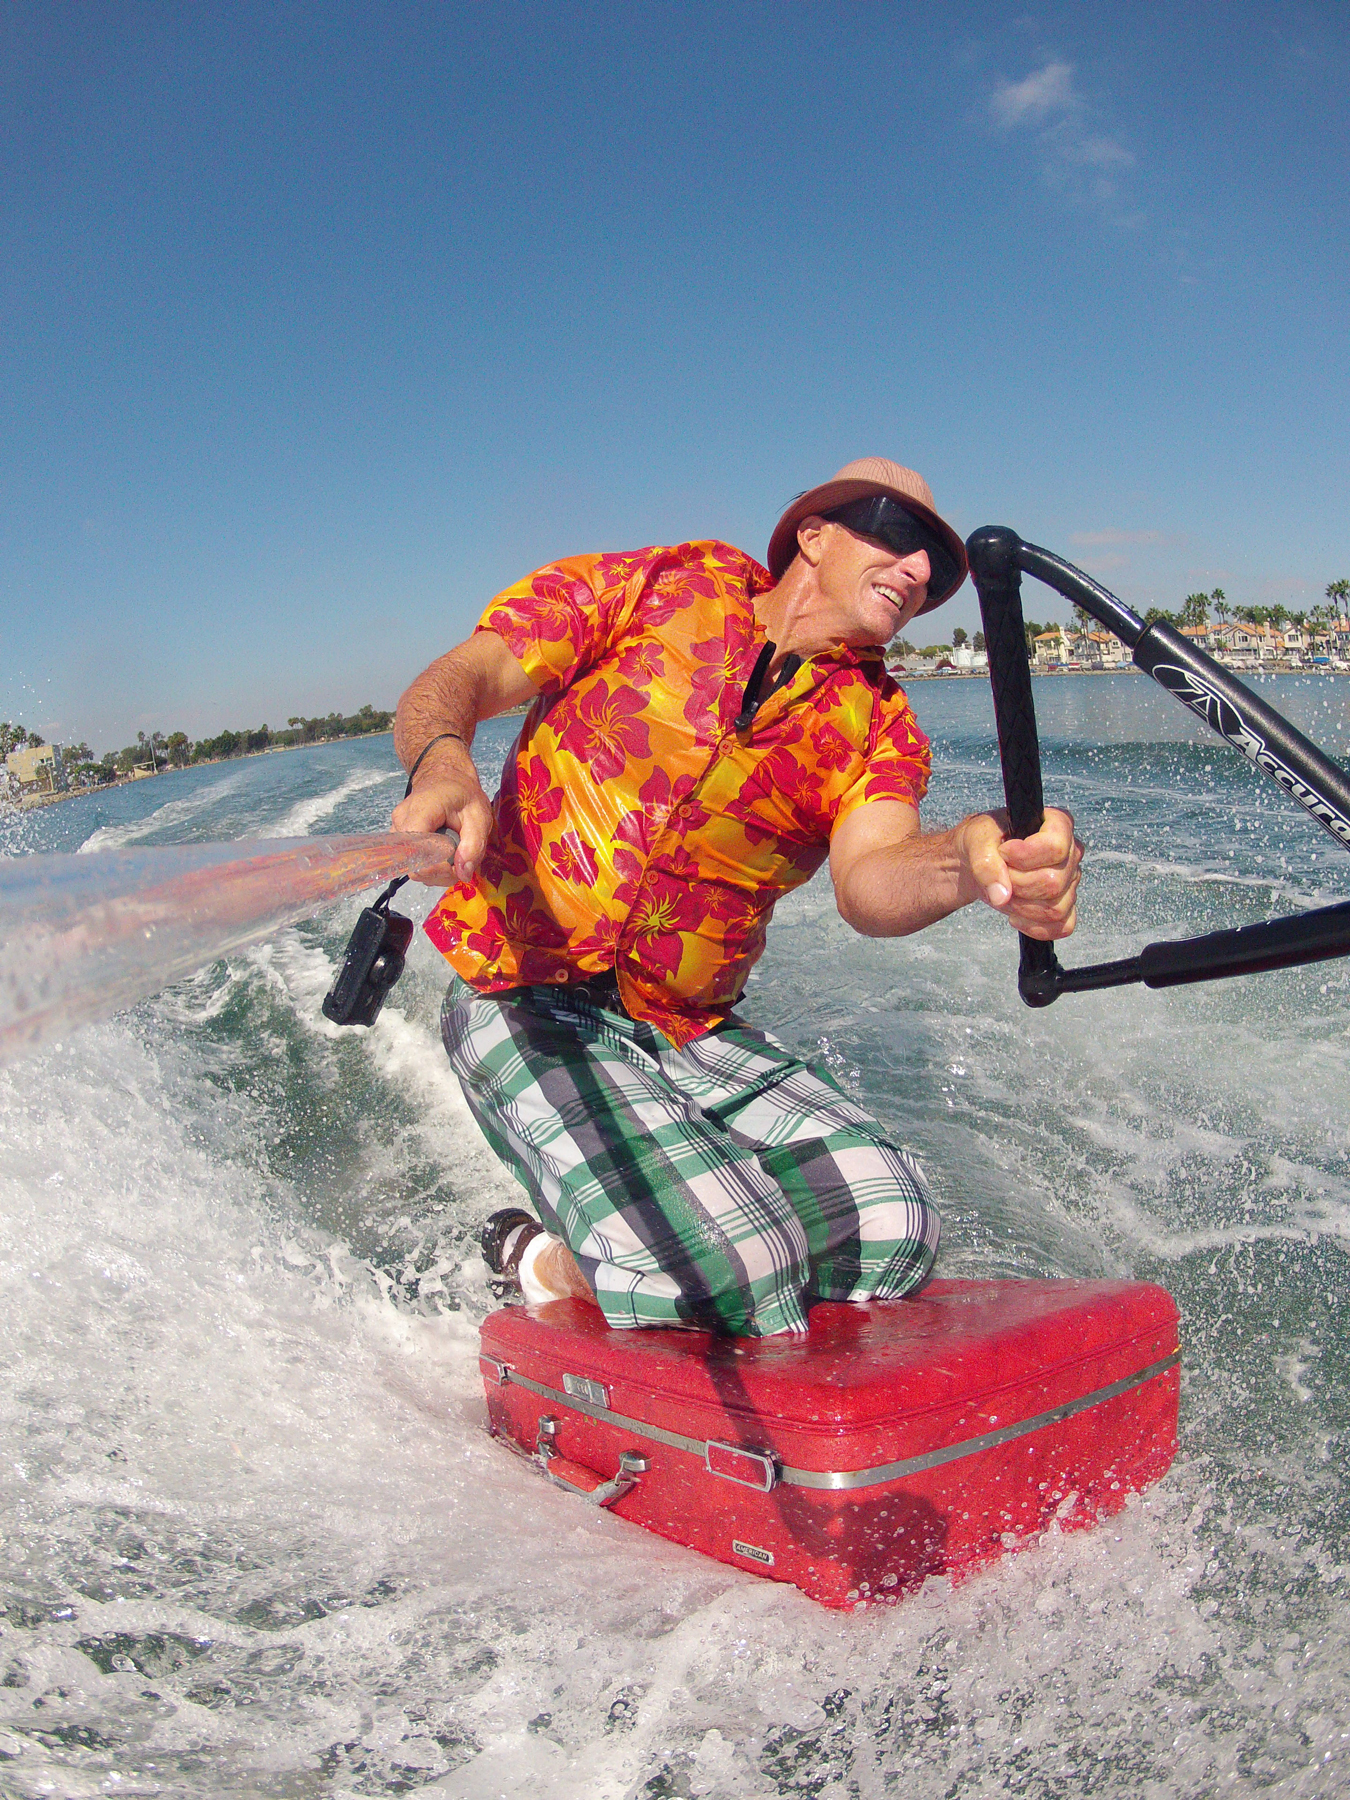 tony klarich suitcase water skiing tourist funny go pro